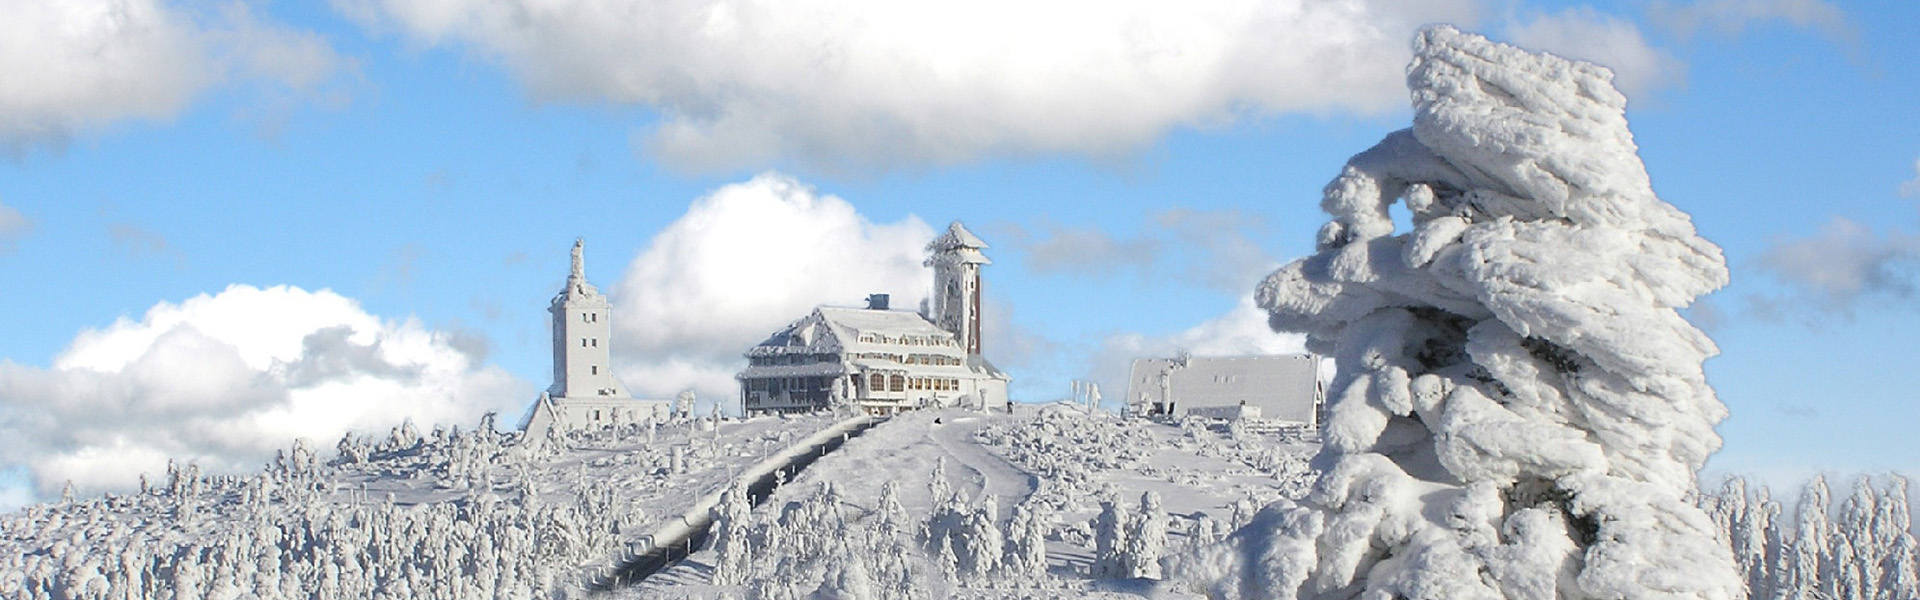 Fichtelberg im Winter